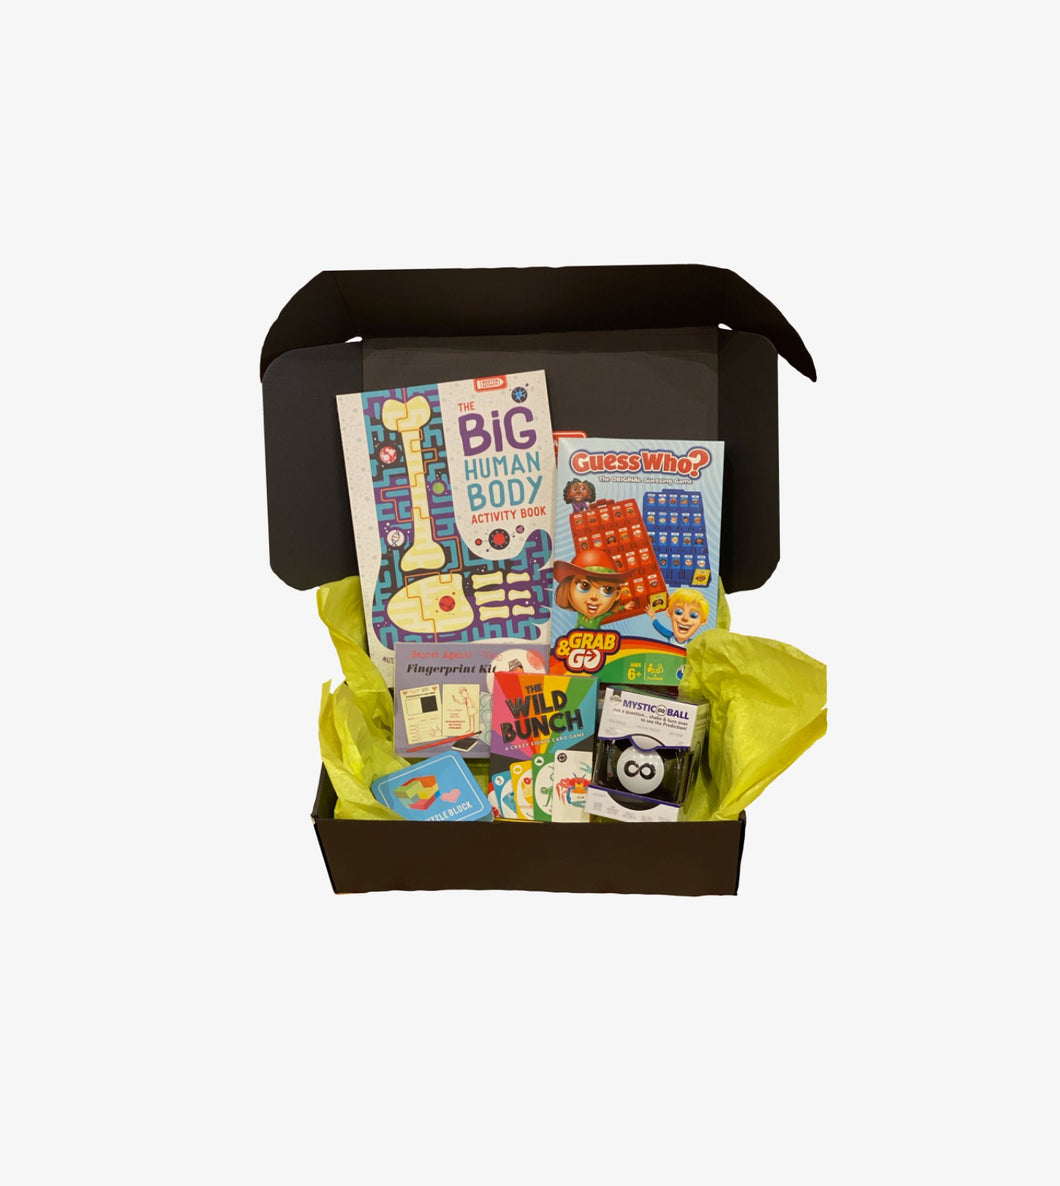 STAY AT HOME BOX - UNISEX ages 6-12: LARGE